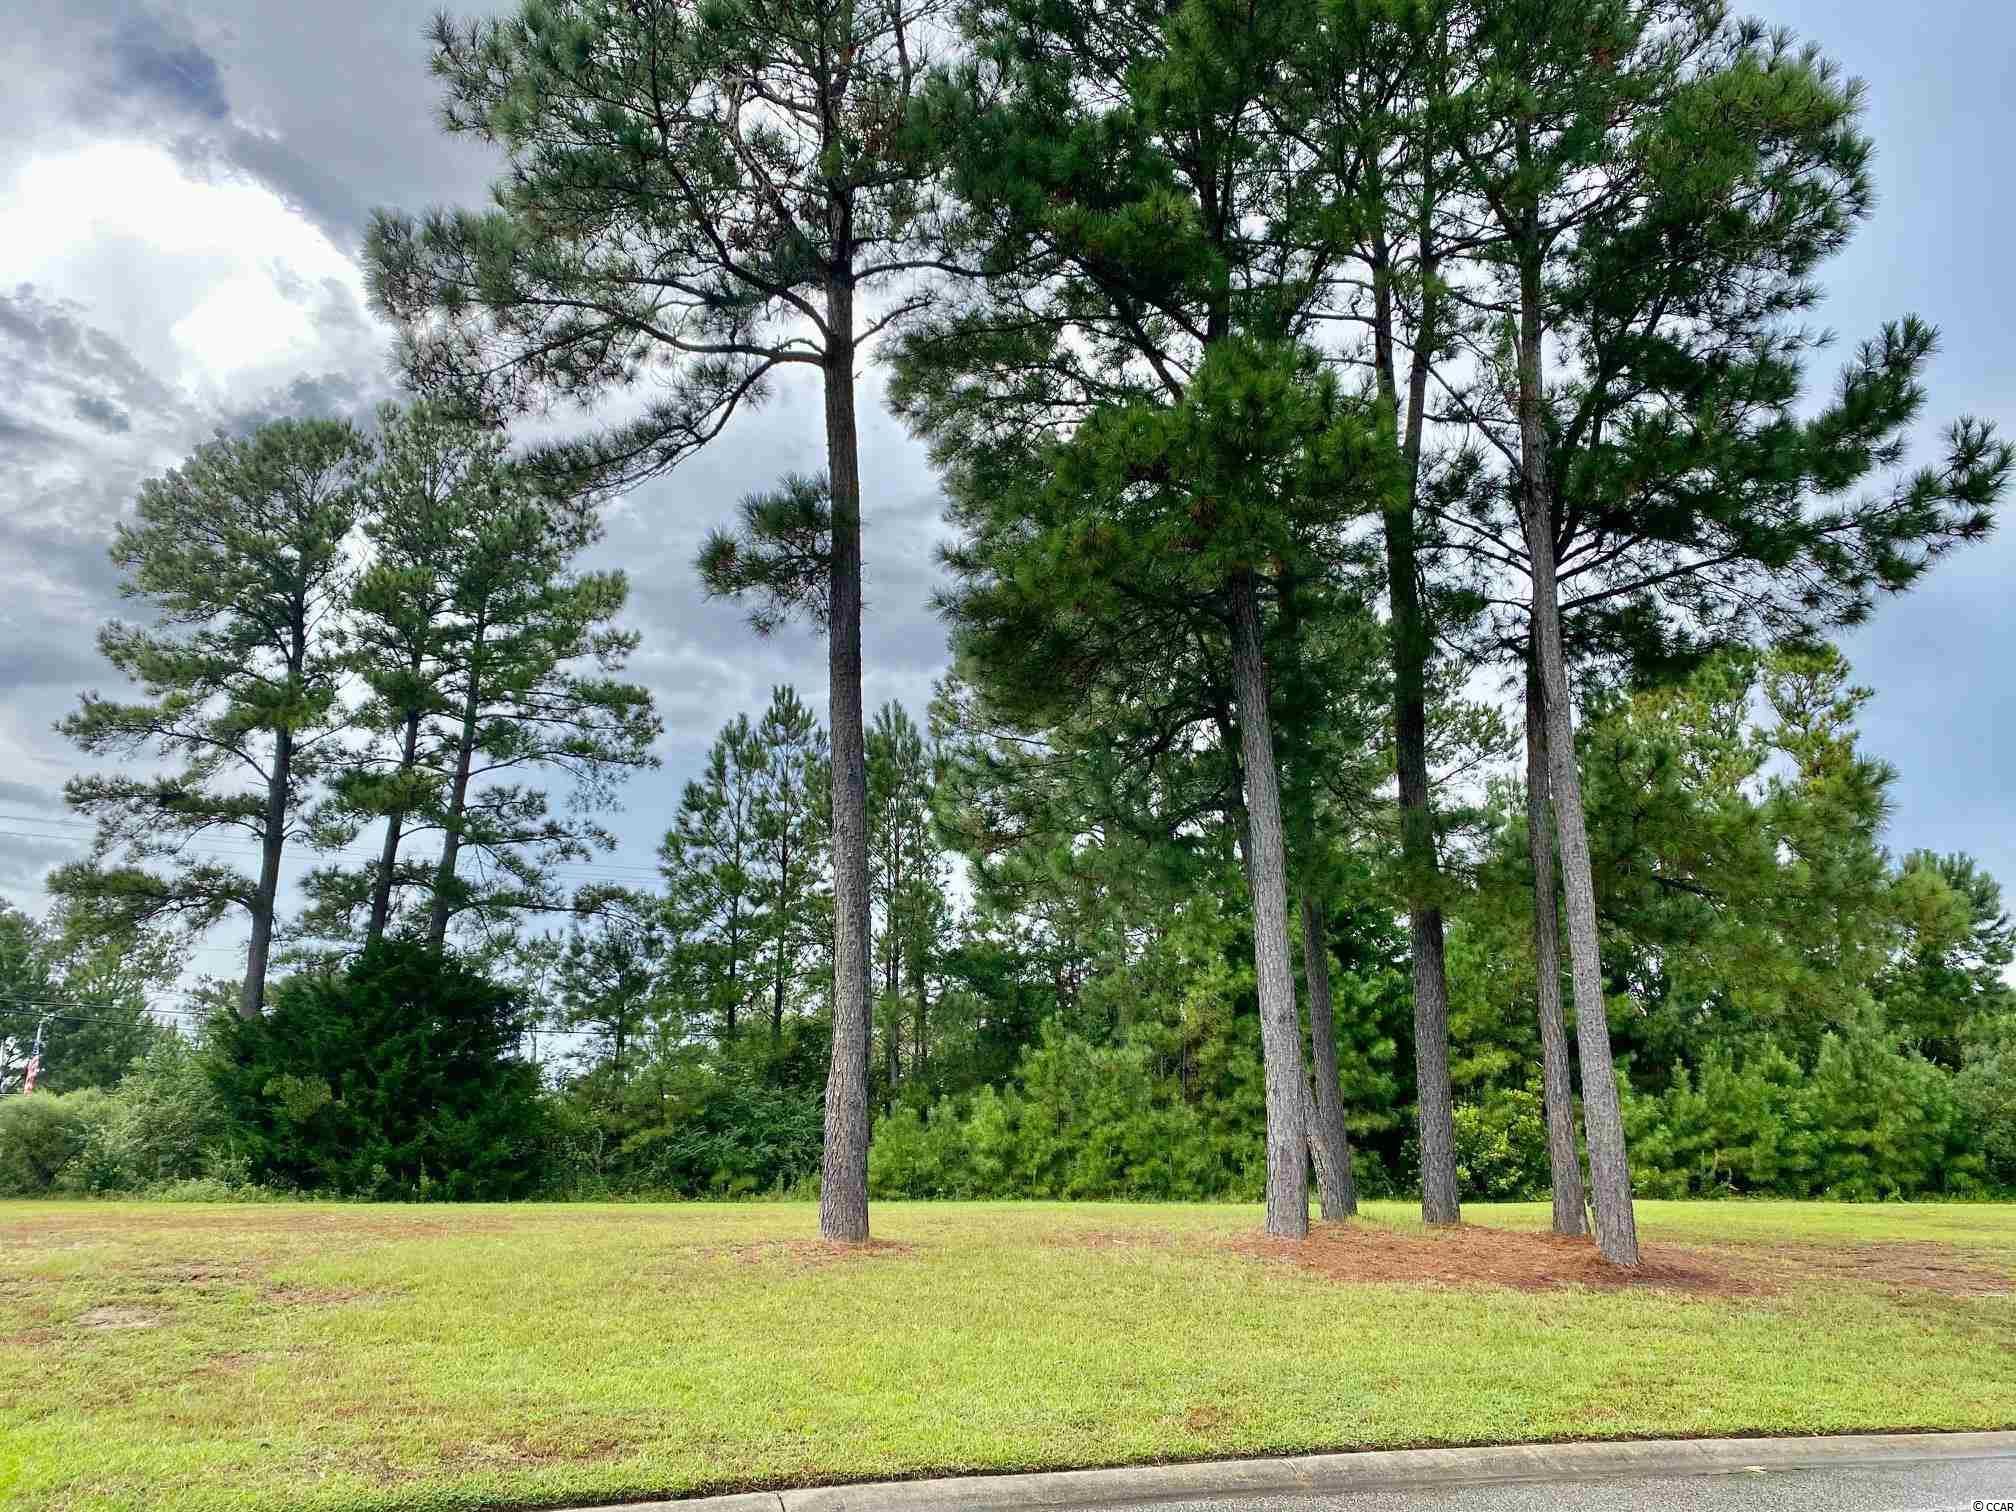 Welcome to this hidden gem in Little River, SC that has some of the most beautiful homes within a gated community.  Build your dream home in the prestigious Waterfall community with an 8.5 acre lake, community pool and beautiful amenity center. This beautiful lot is only minutes away from shopping, dining, dog park, sports complex and the beach!